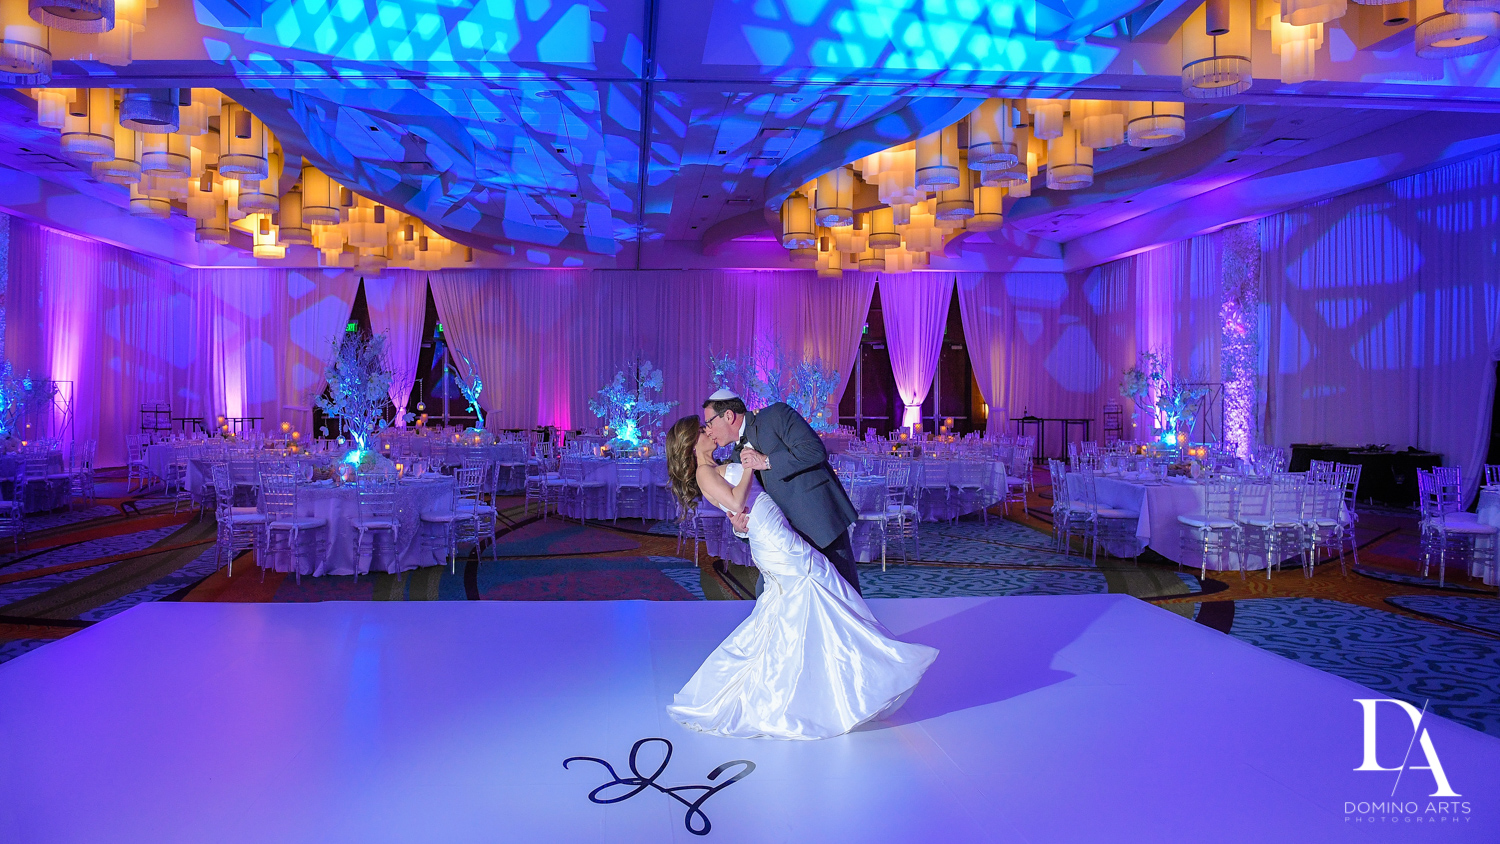 Classic Wedding Photography in South Florida at Fort Lauderdale Marriott Harbor Beach Resort & Spa by Domino Arts Photography